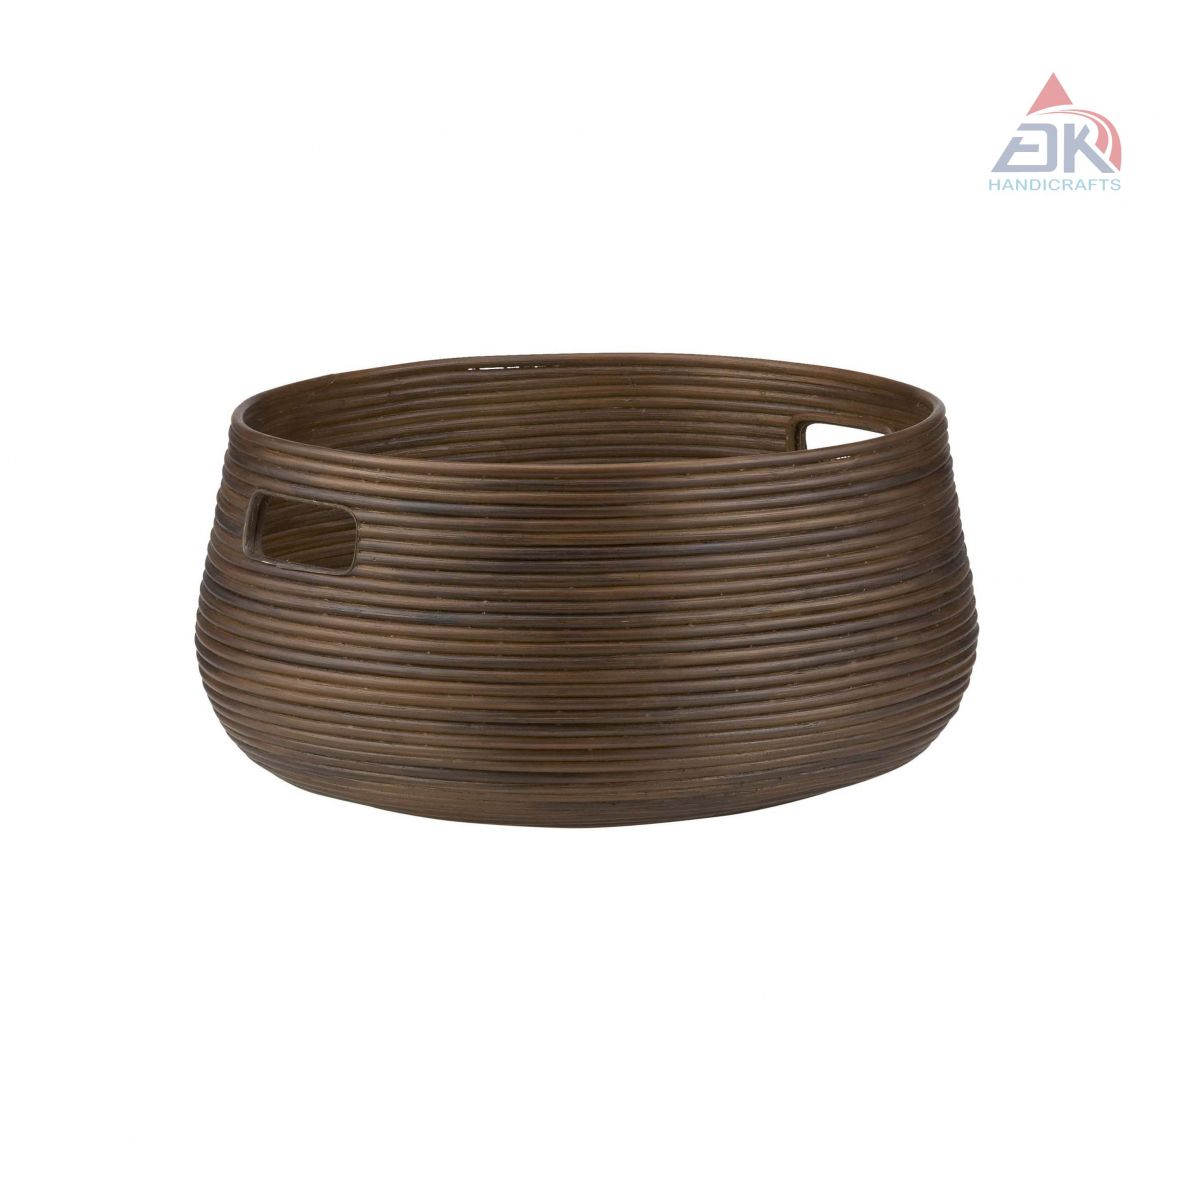 Coiled Oval Basket # DK35